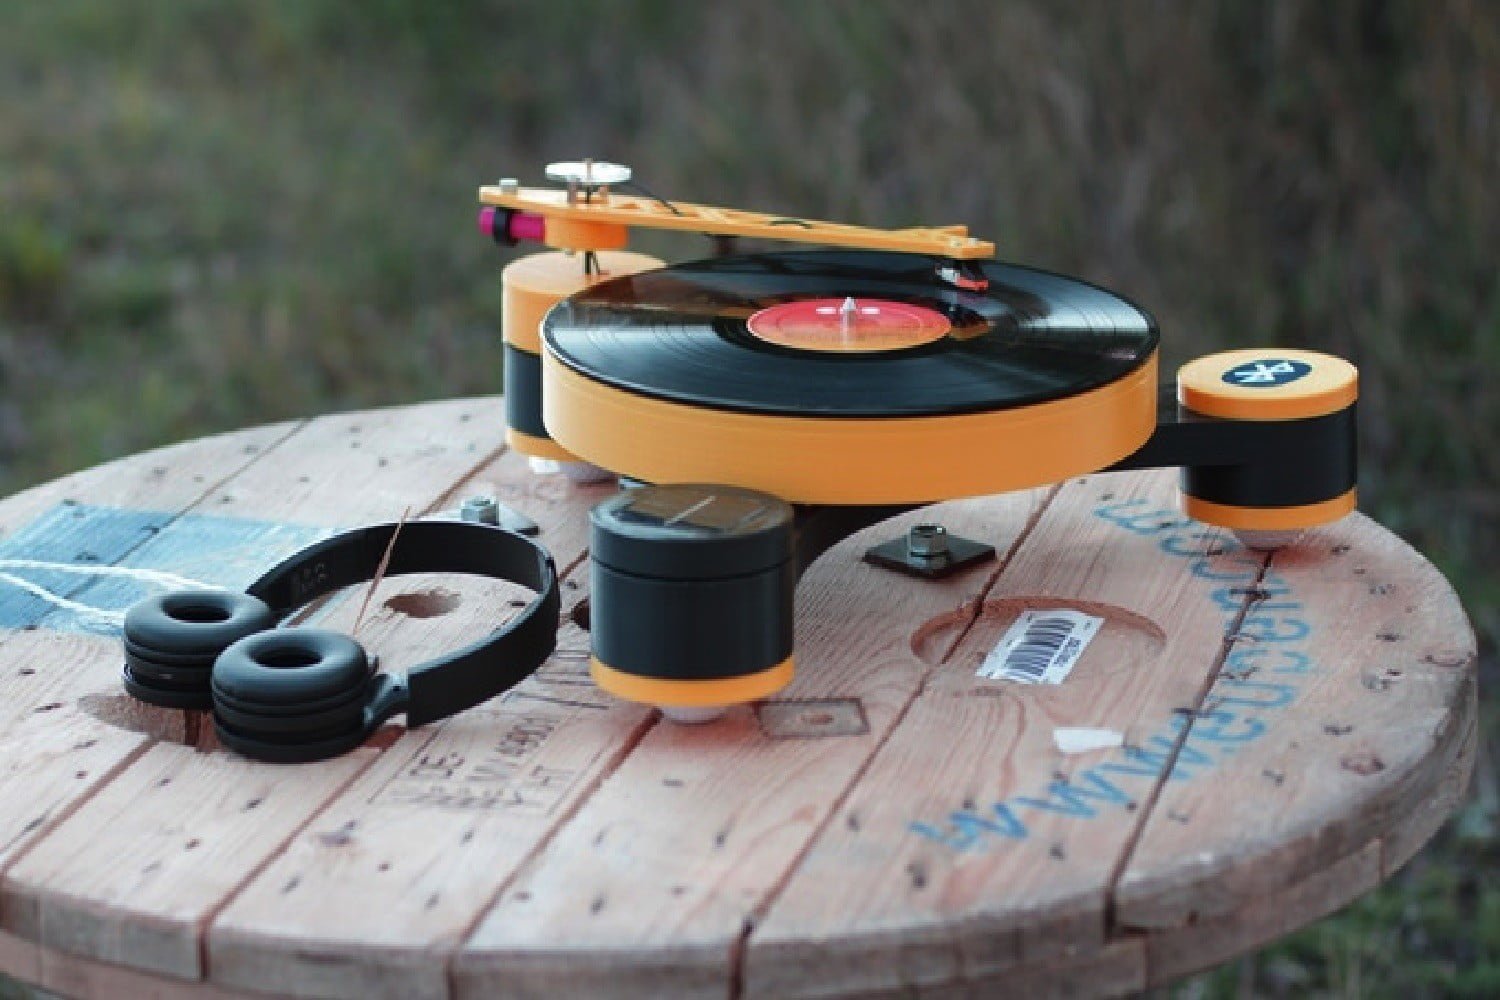 Best Turntables 2020 Take Your Vinyl on a High Tech Spin with this 3D Printable Record